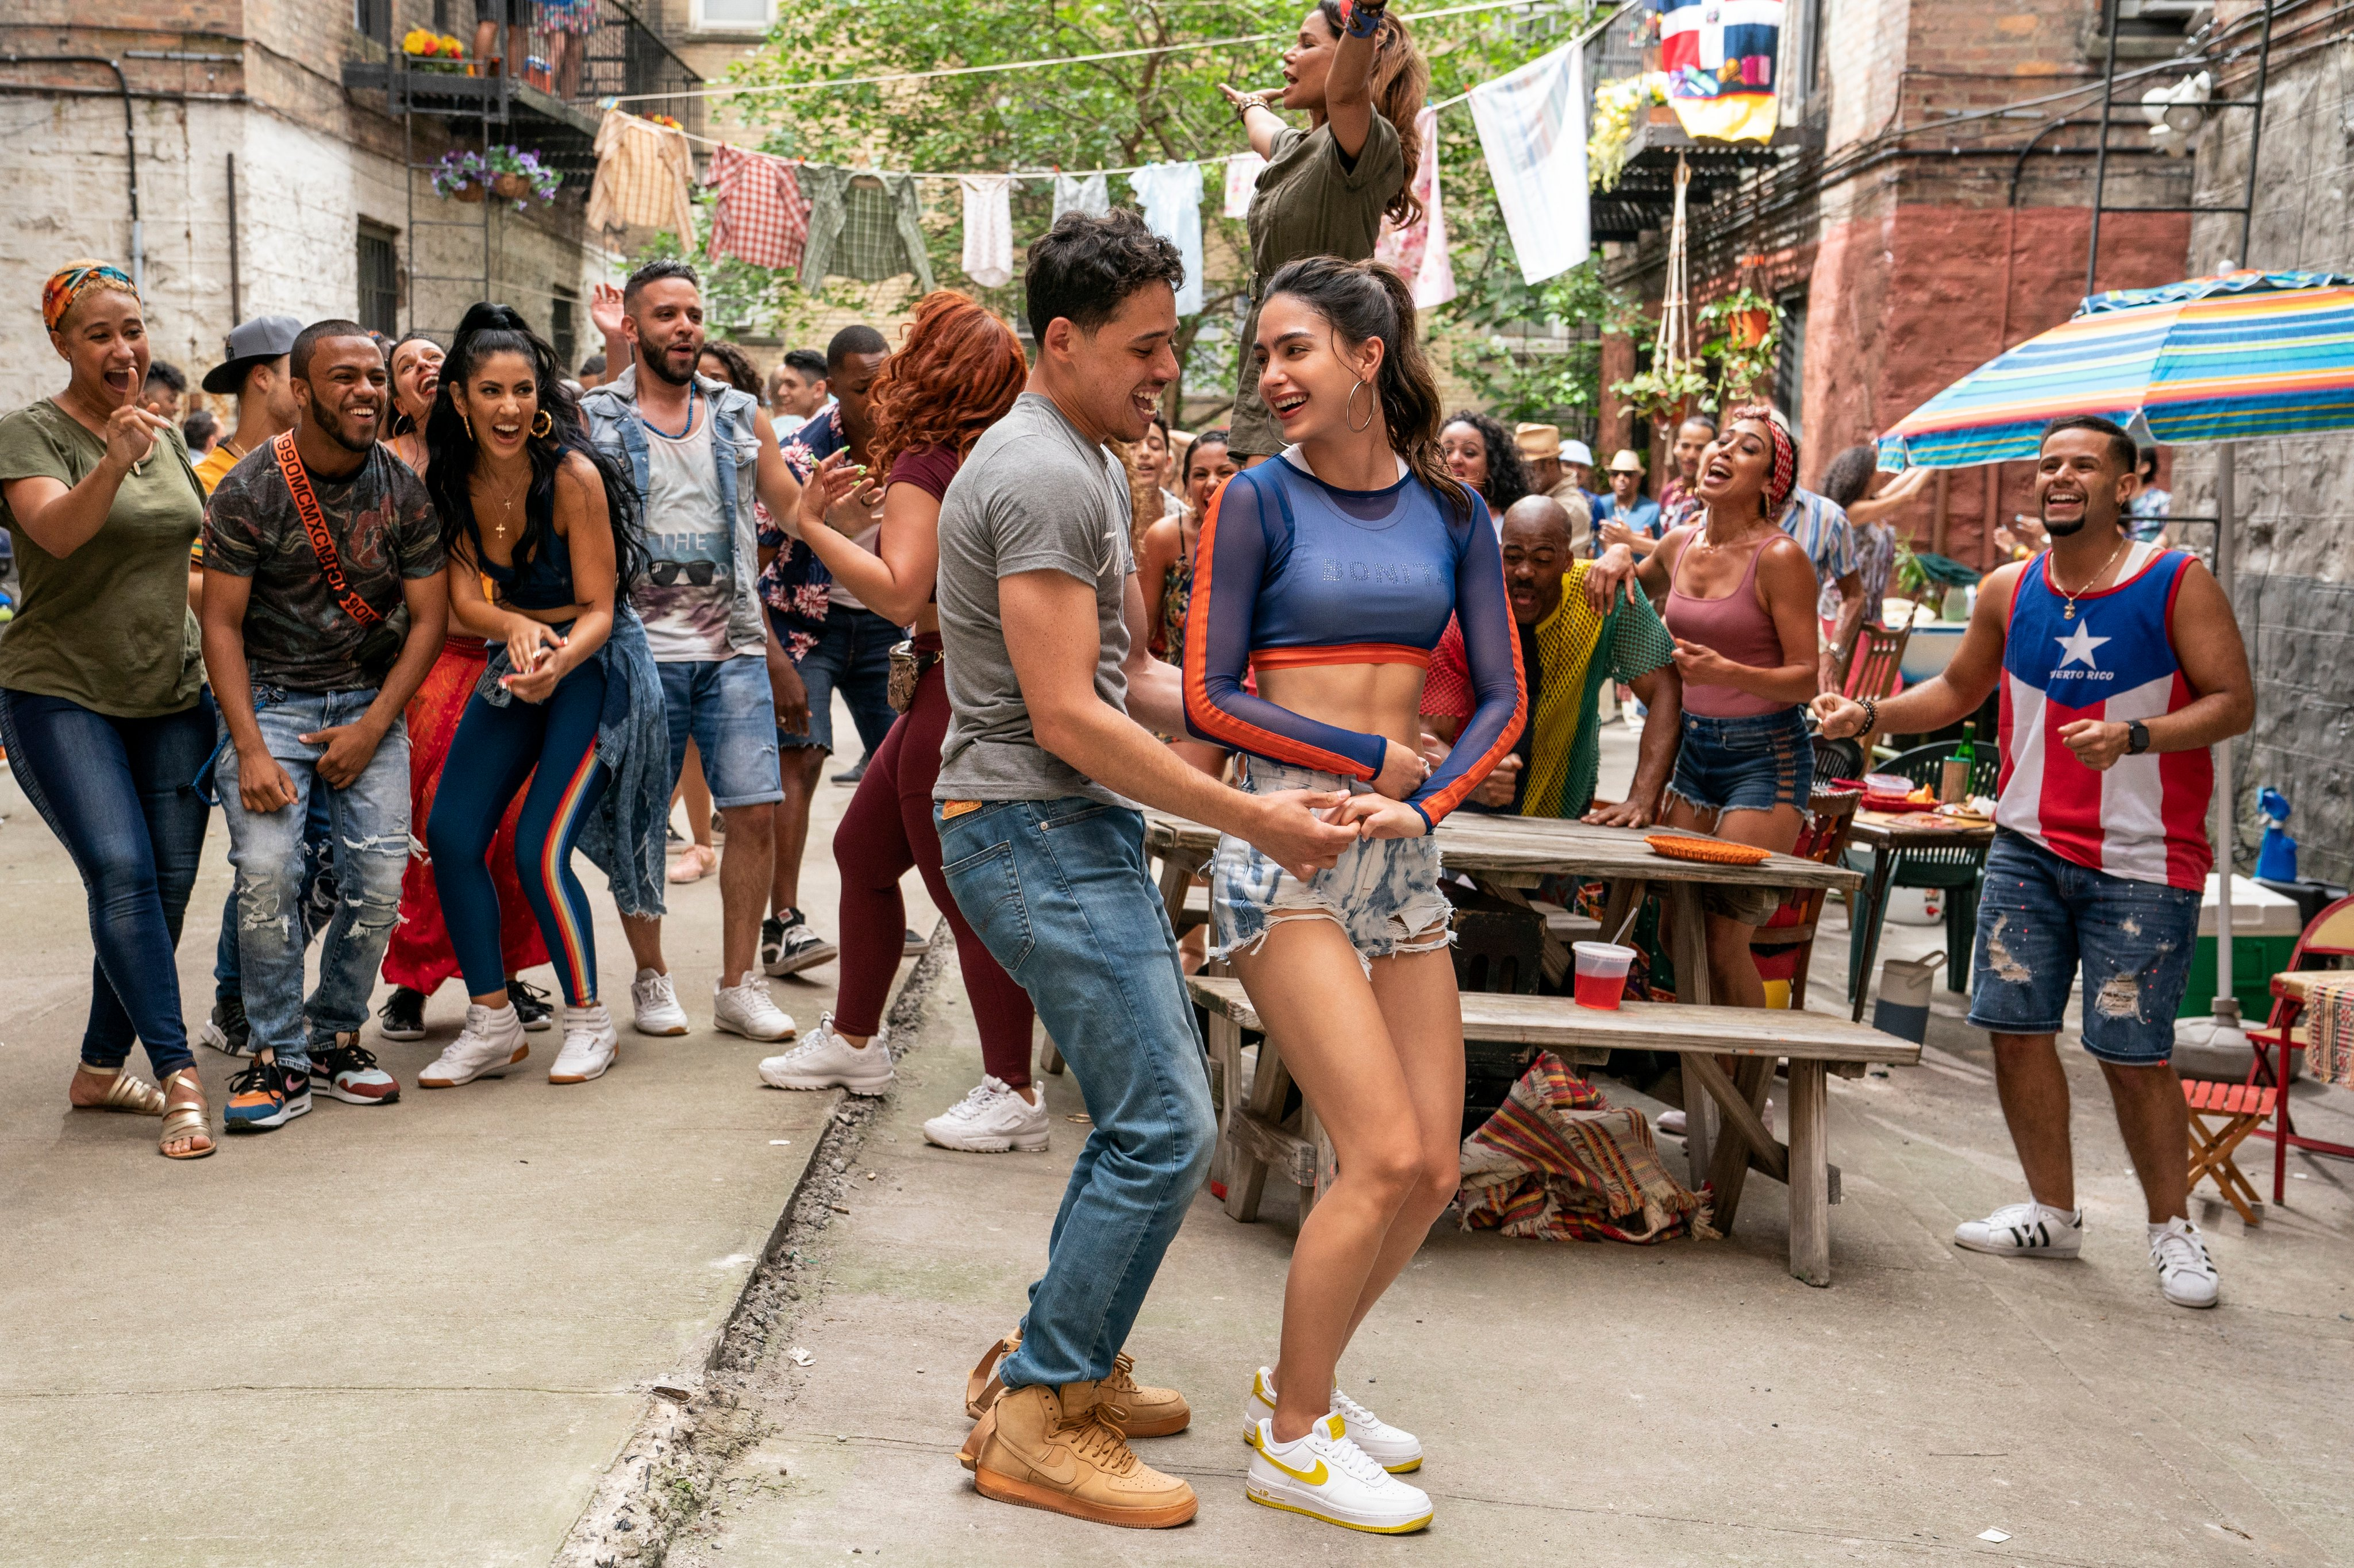 [Film review] In the Heights